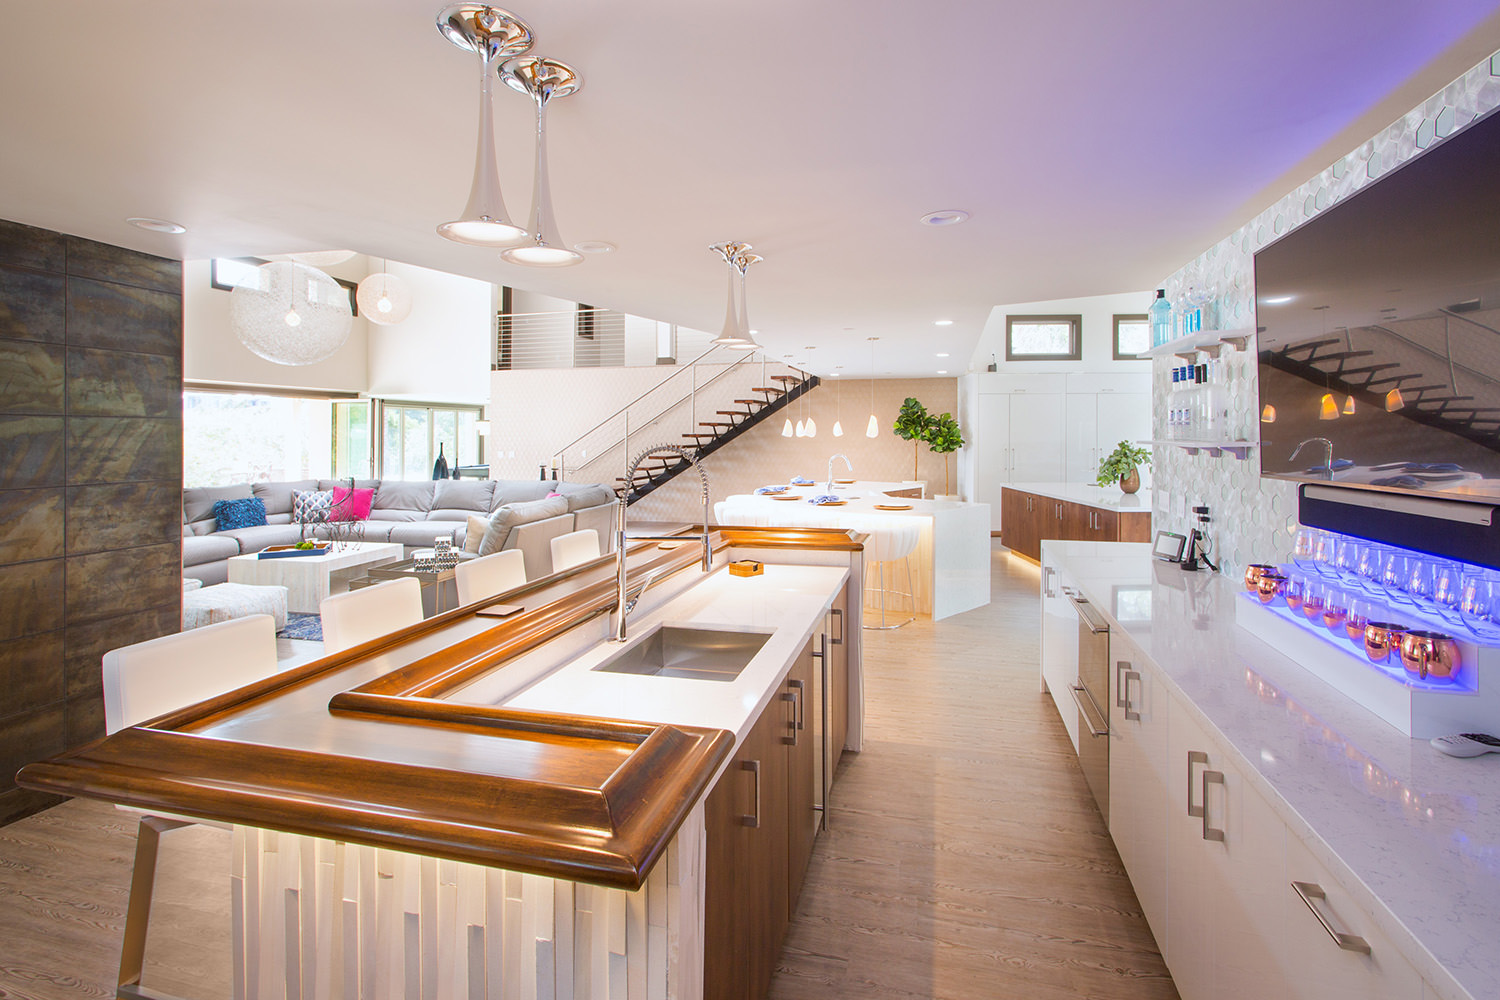 kitchen-interior-design-los-altos-california-ktj-design-co-4.jpg